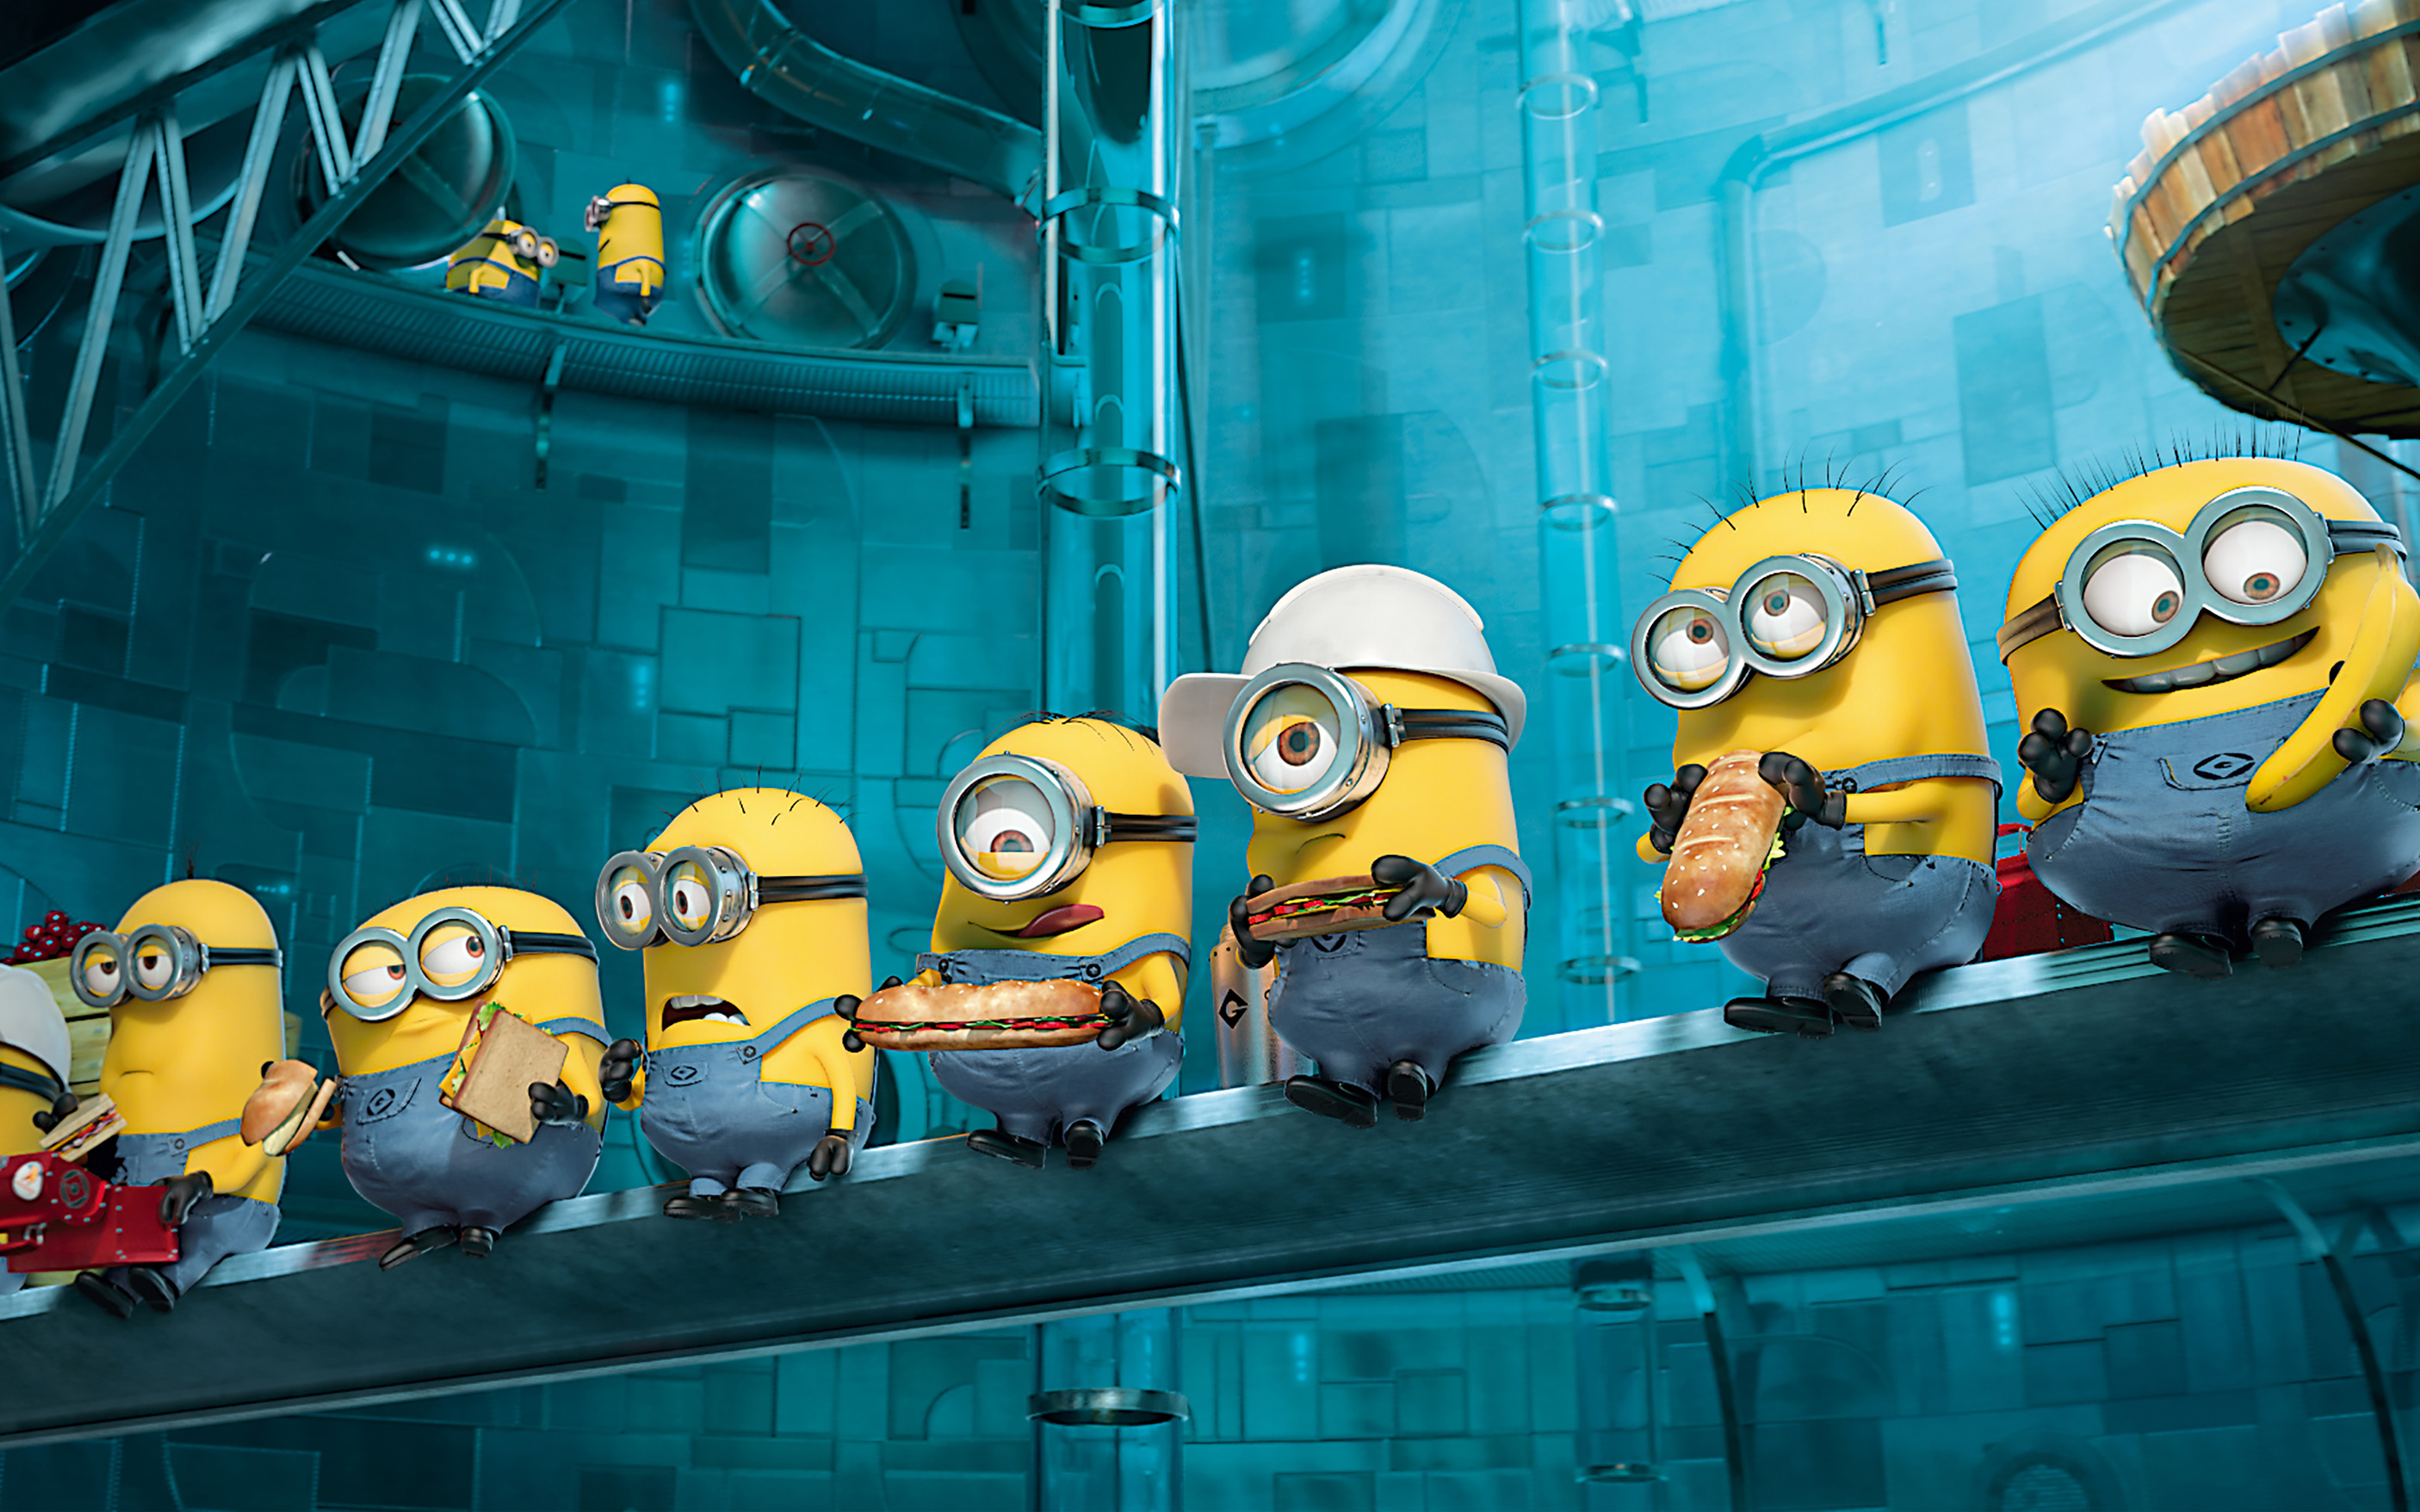 Download Minions Paradise Despicable Me 2 HD Wallpaper 5210 Full 2880x1800